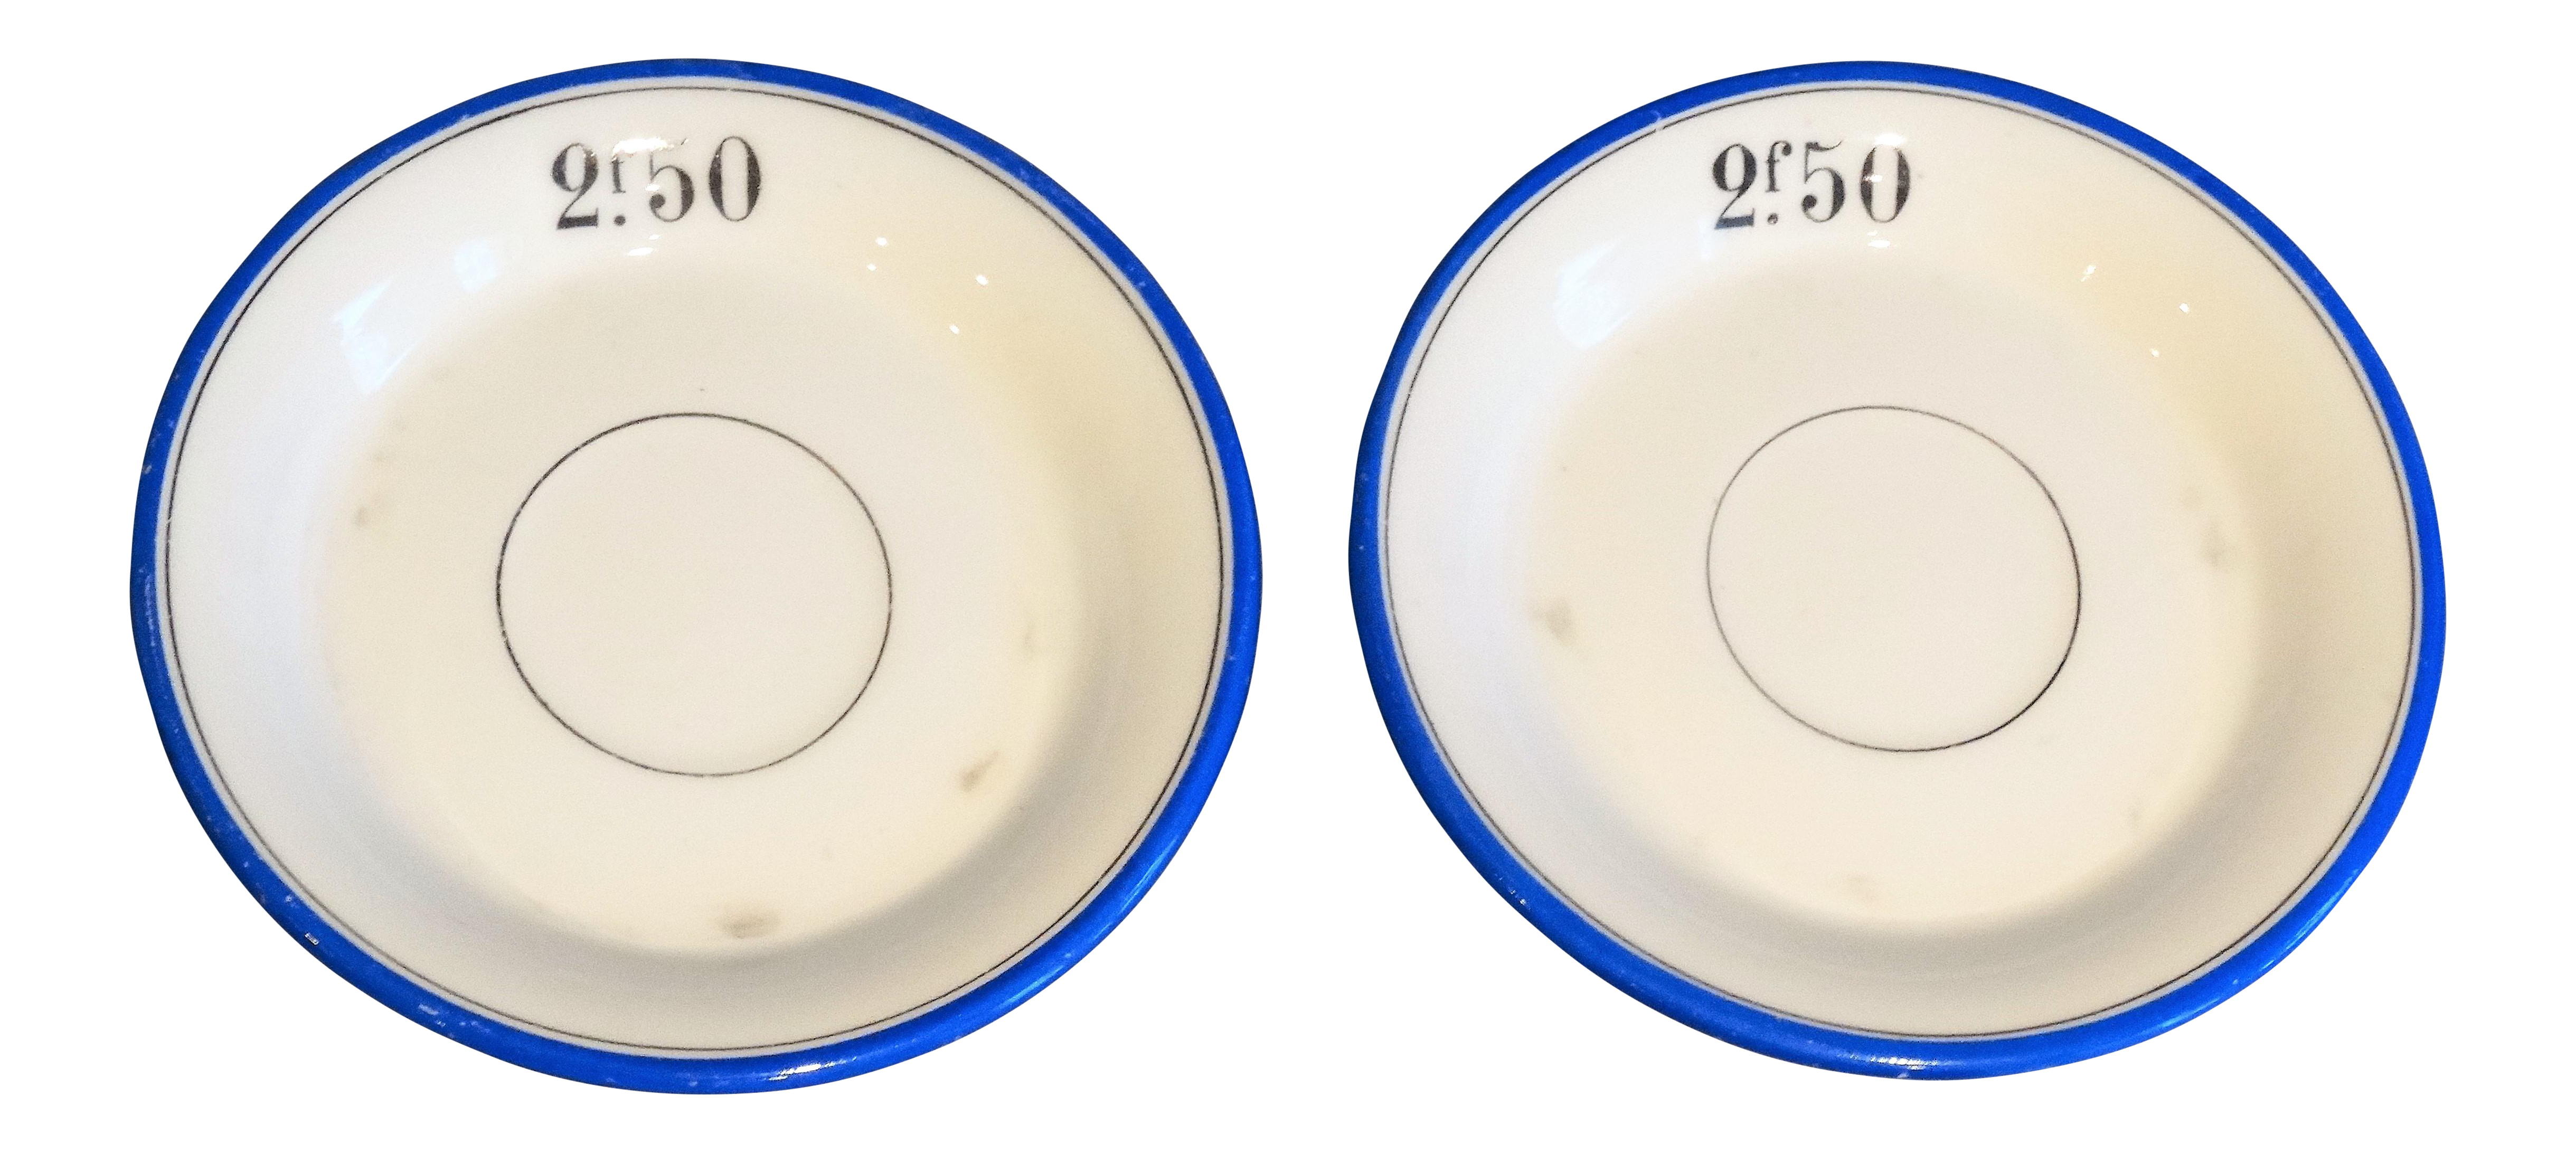 French Franc Bistro Cafe Tab Plates - A Pair  sc 1 st  Chairish & French Franc Bistro Cafe Tab Plates - A Pair | Chairish